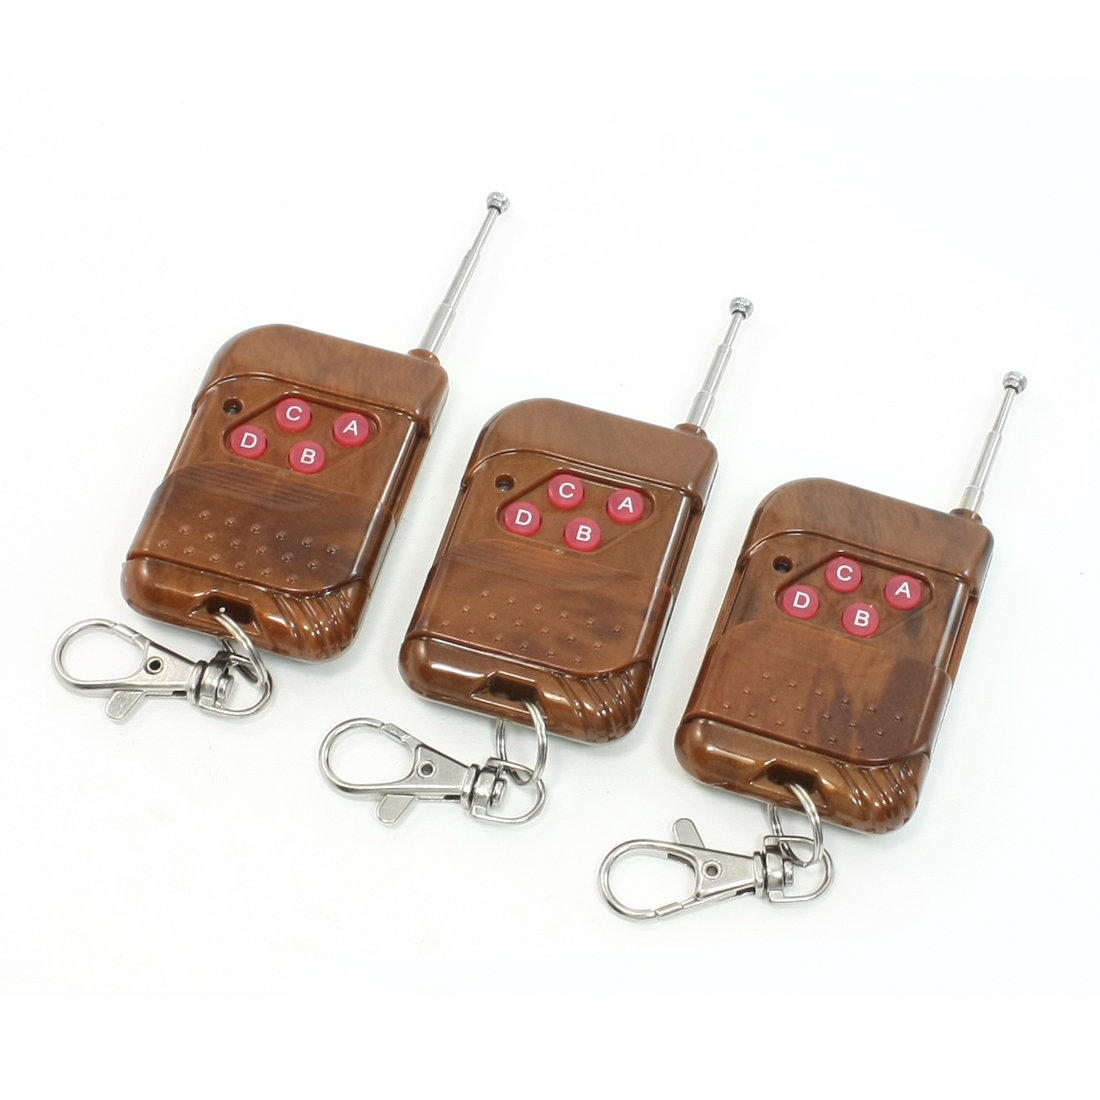 3 Pcs x DC 12V Four 4 Button 433MHz RF Wireless Remote Control Switch Transmitter Keyring